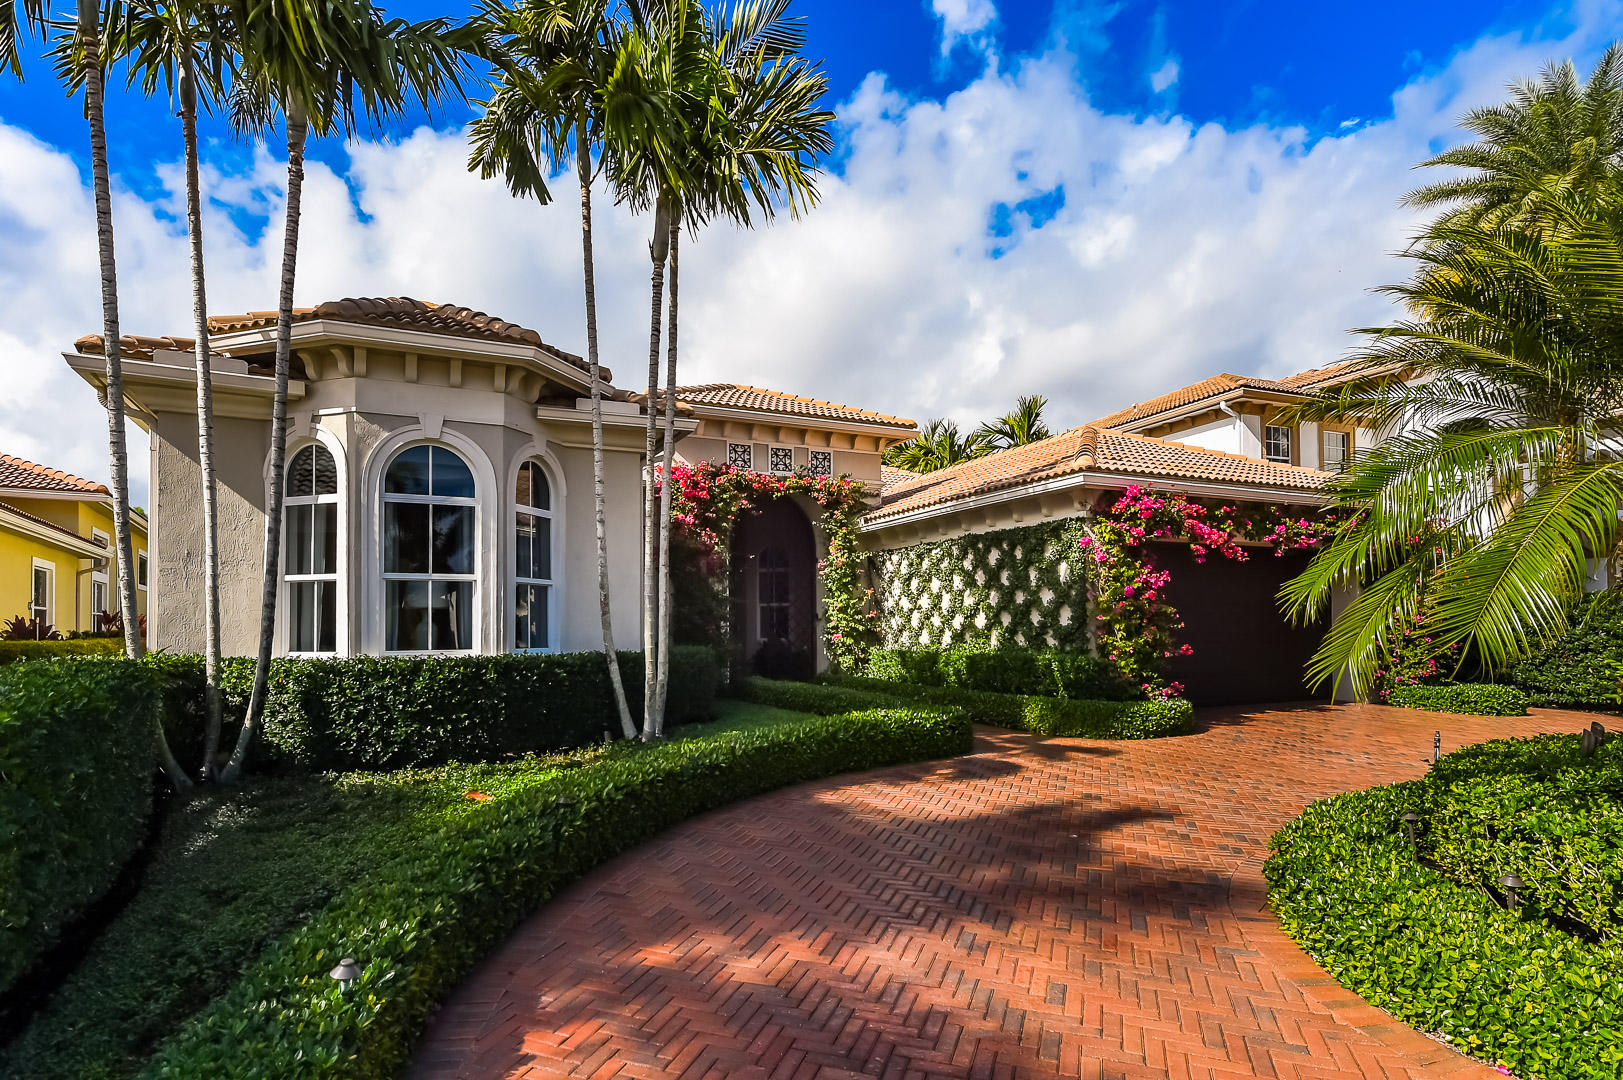 315 Charroux Drive, Palm Beach Gardens, Florida 33410, 3 Bedrooms Bedrooms, ,3.1 BathroomsBathrooms,A,Single family,Charroux,RX-10586681